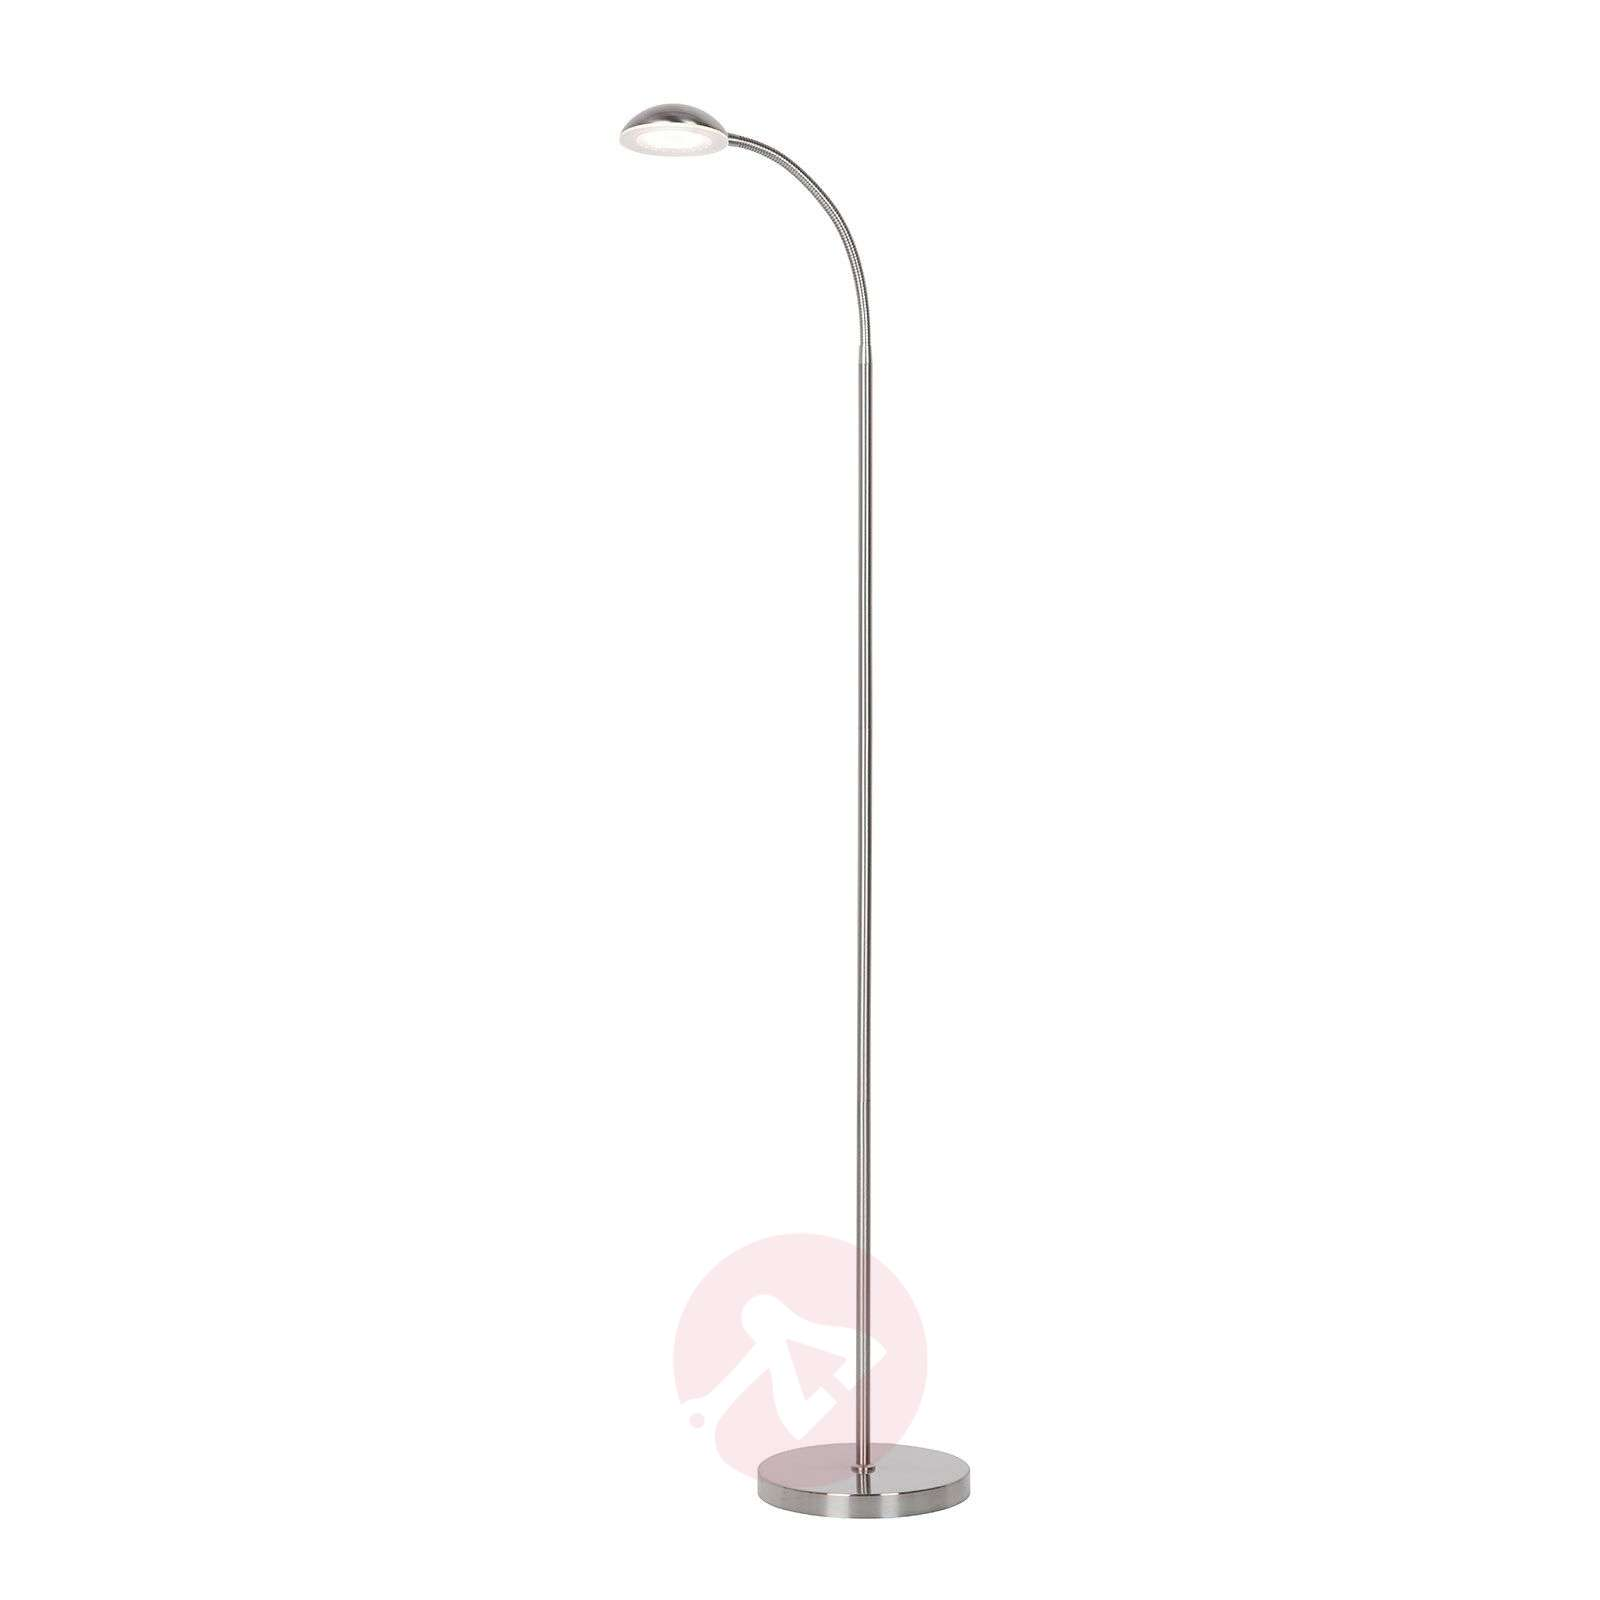 Liseuse LED Giacomo avec bras flexible, nickel